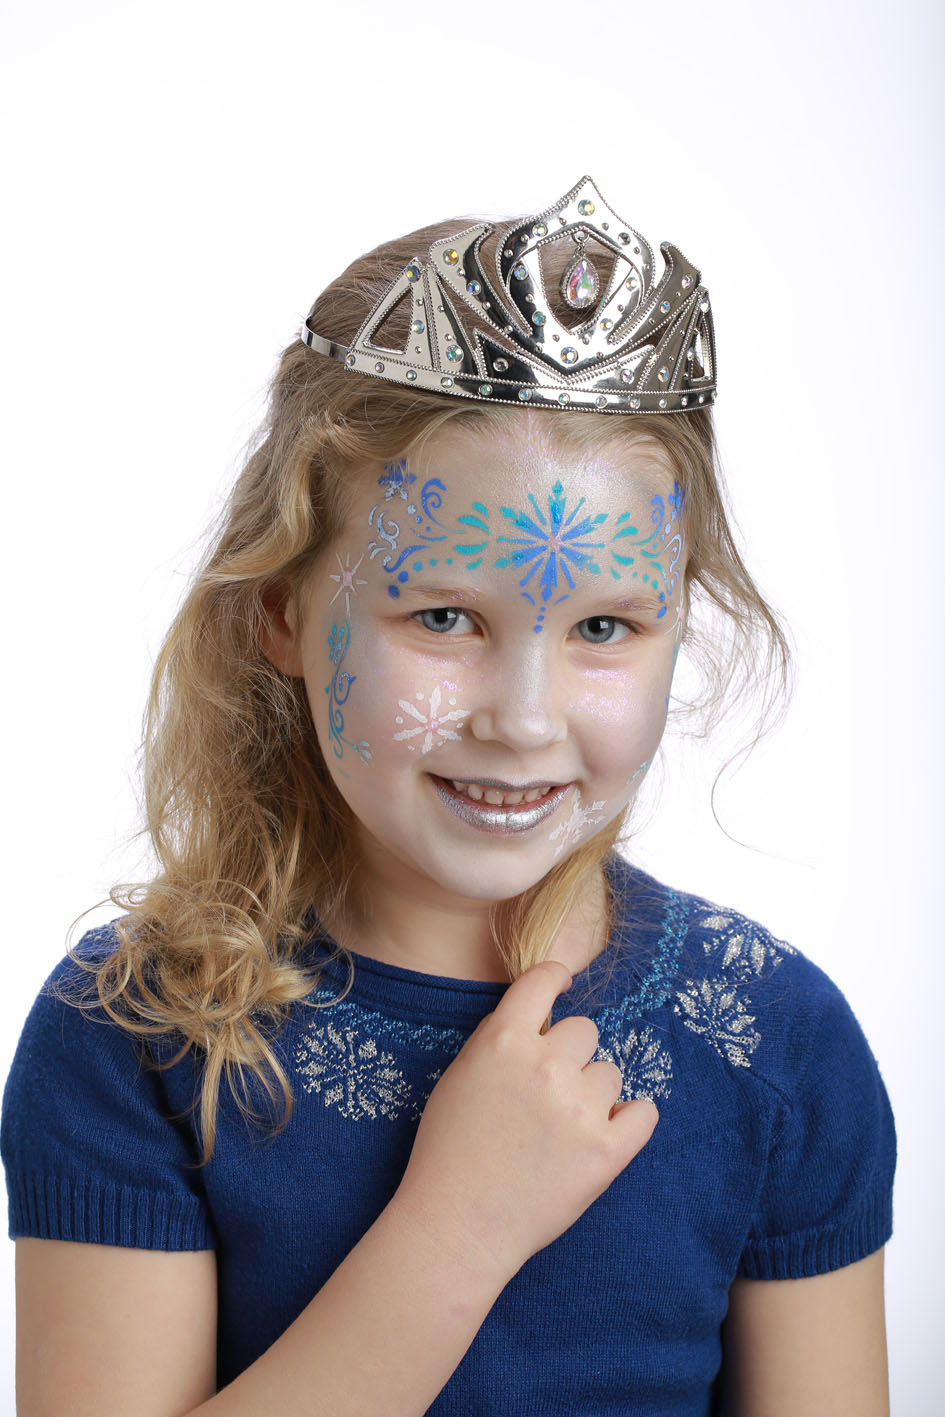 Pochoir de maquillage r utilisable princesse des neiges - Princesse des neiges ...